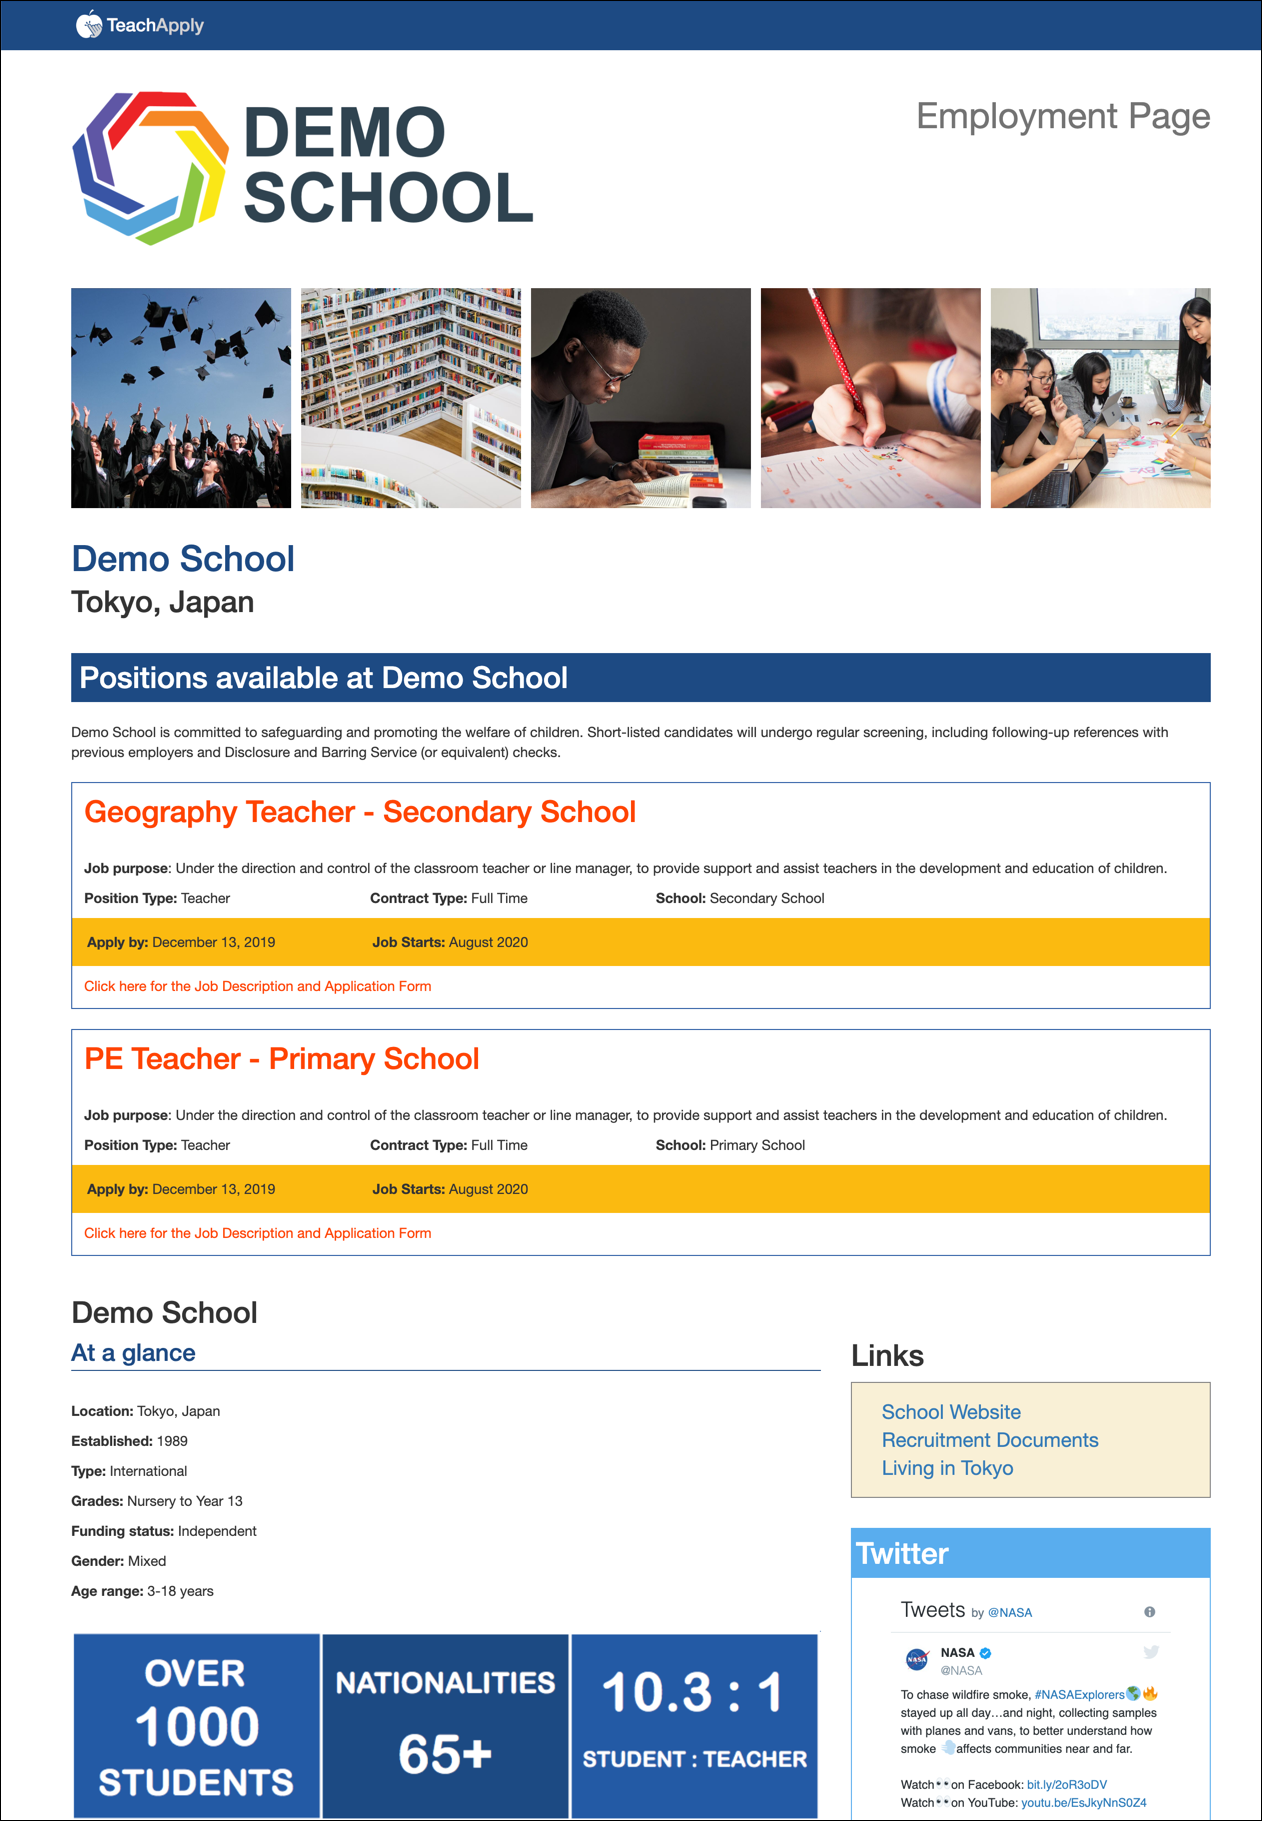 TeachApply Employment Landing Page for Demo School